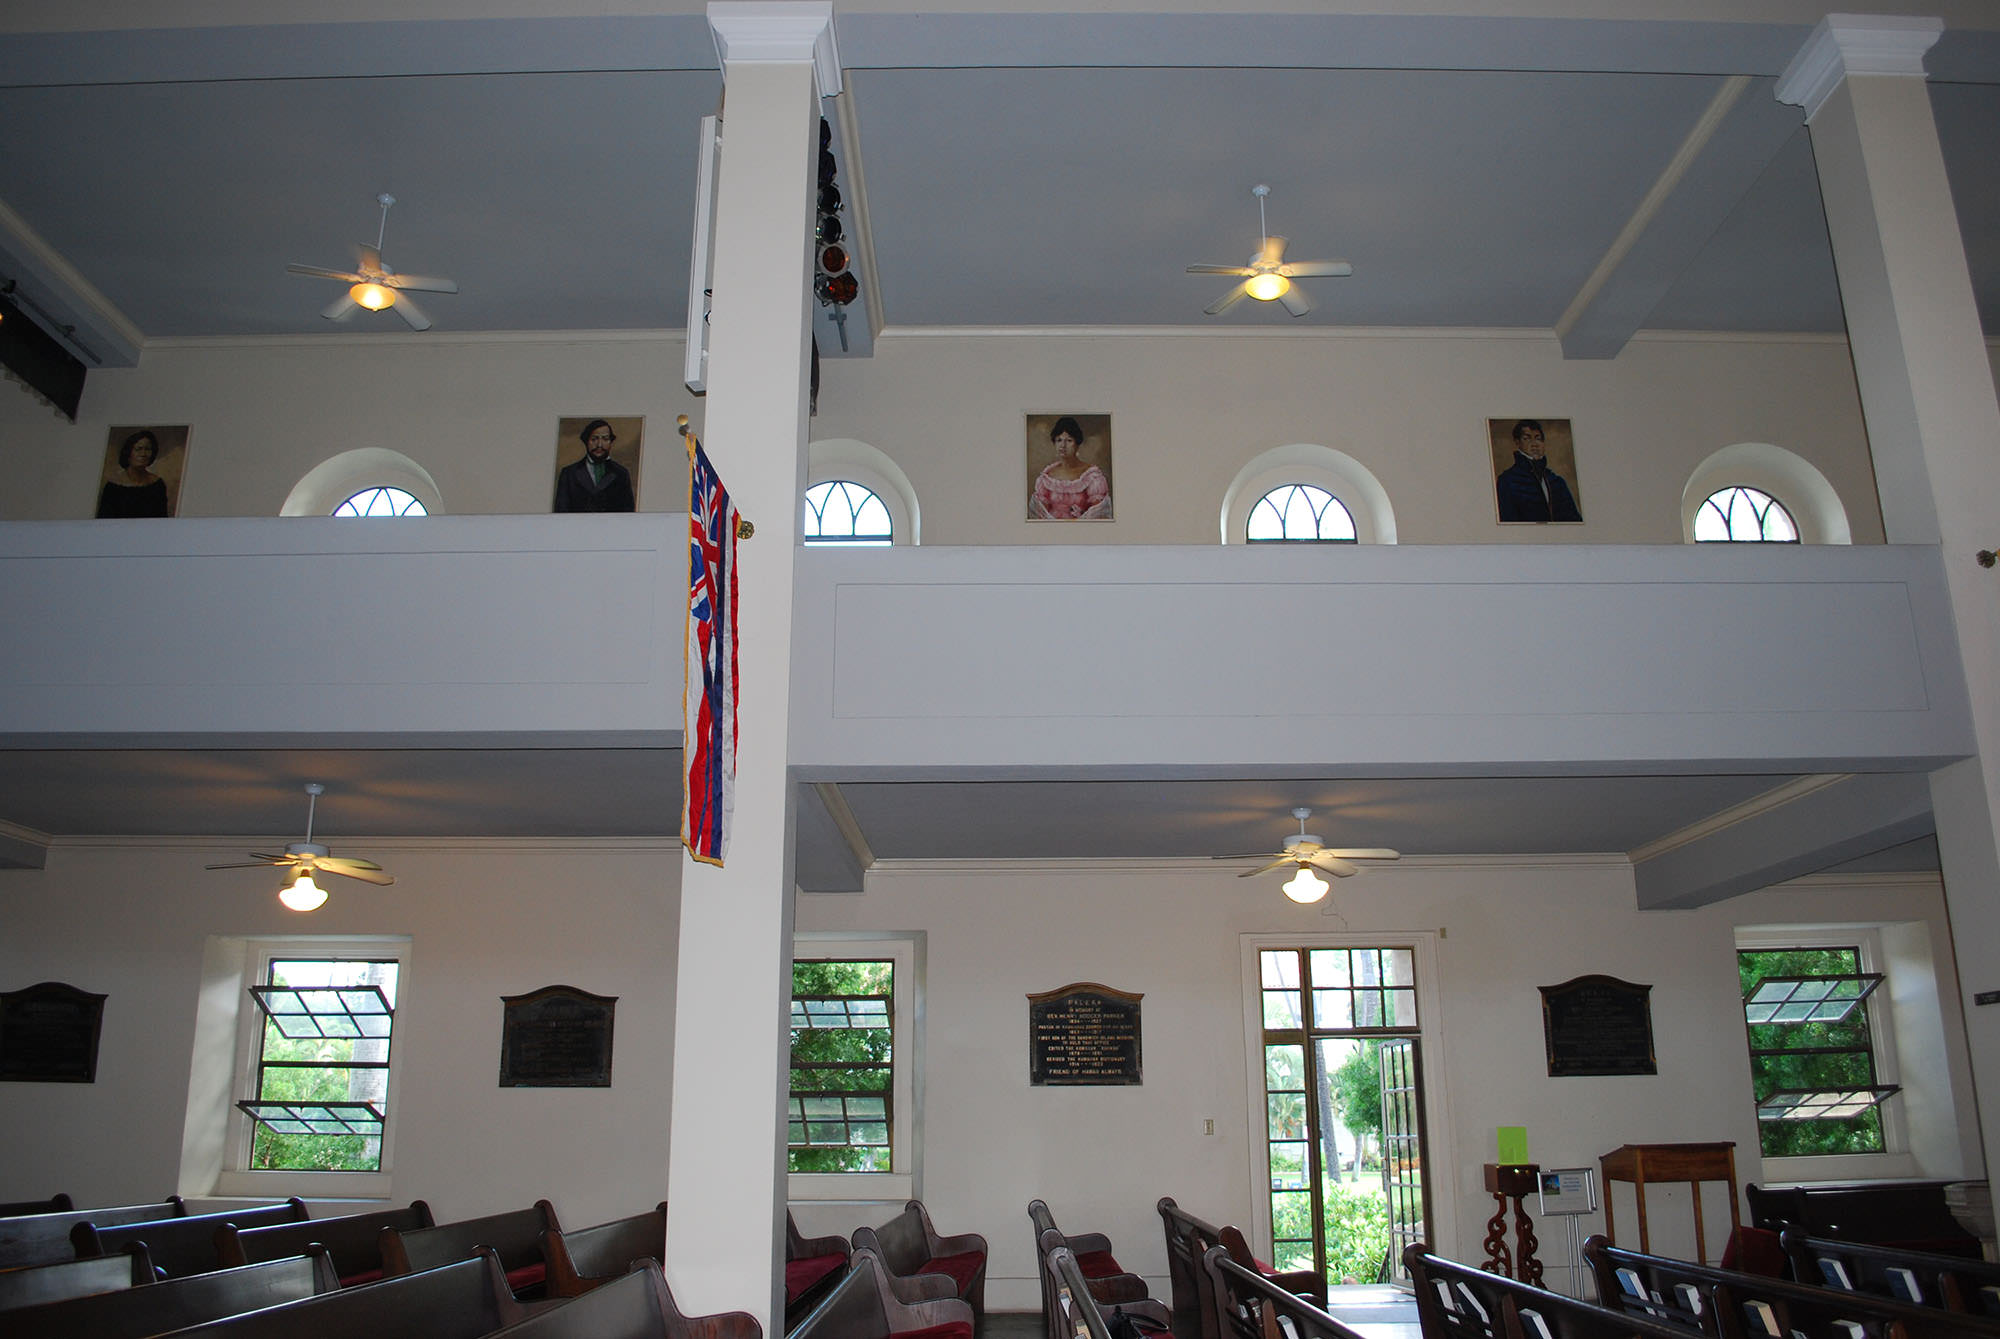 Fig. 11 Kawaiahaʻo Church, Oʻahu, interior, showing royal portraits and commemorative plaques in balcony and side aisles, February 2014. Photo: ©Sally Promey